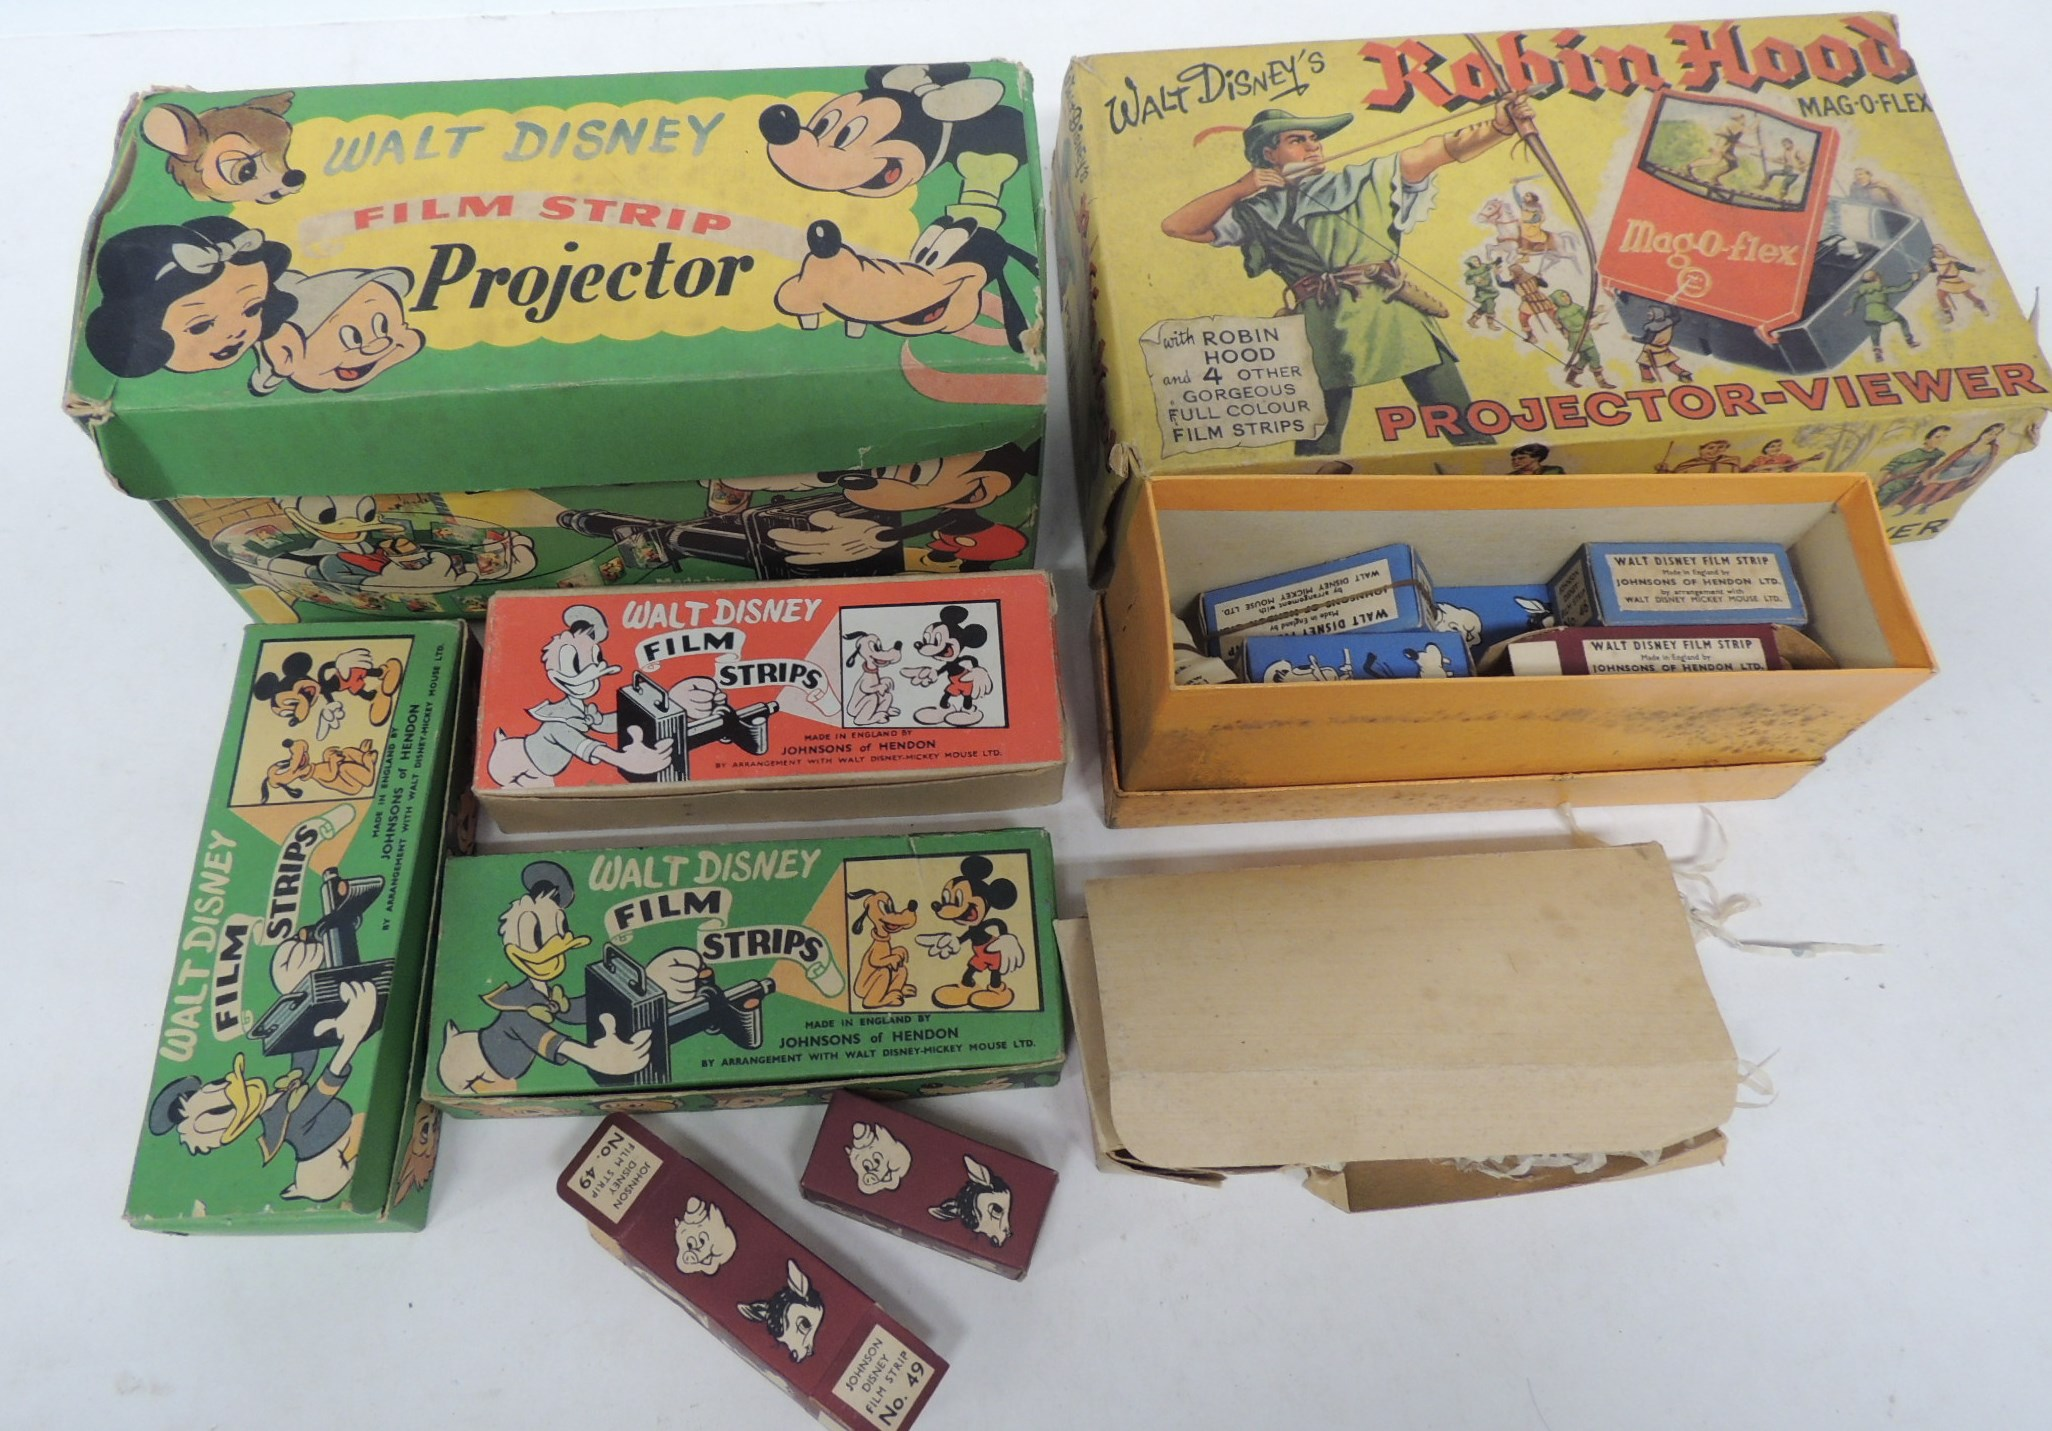 A Walt Disney Film Strip Projector by Johnsons of Hendon in original box and together with two bo